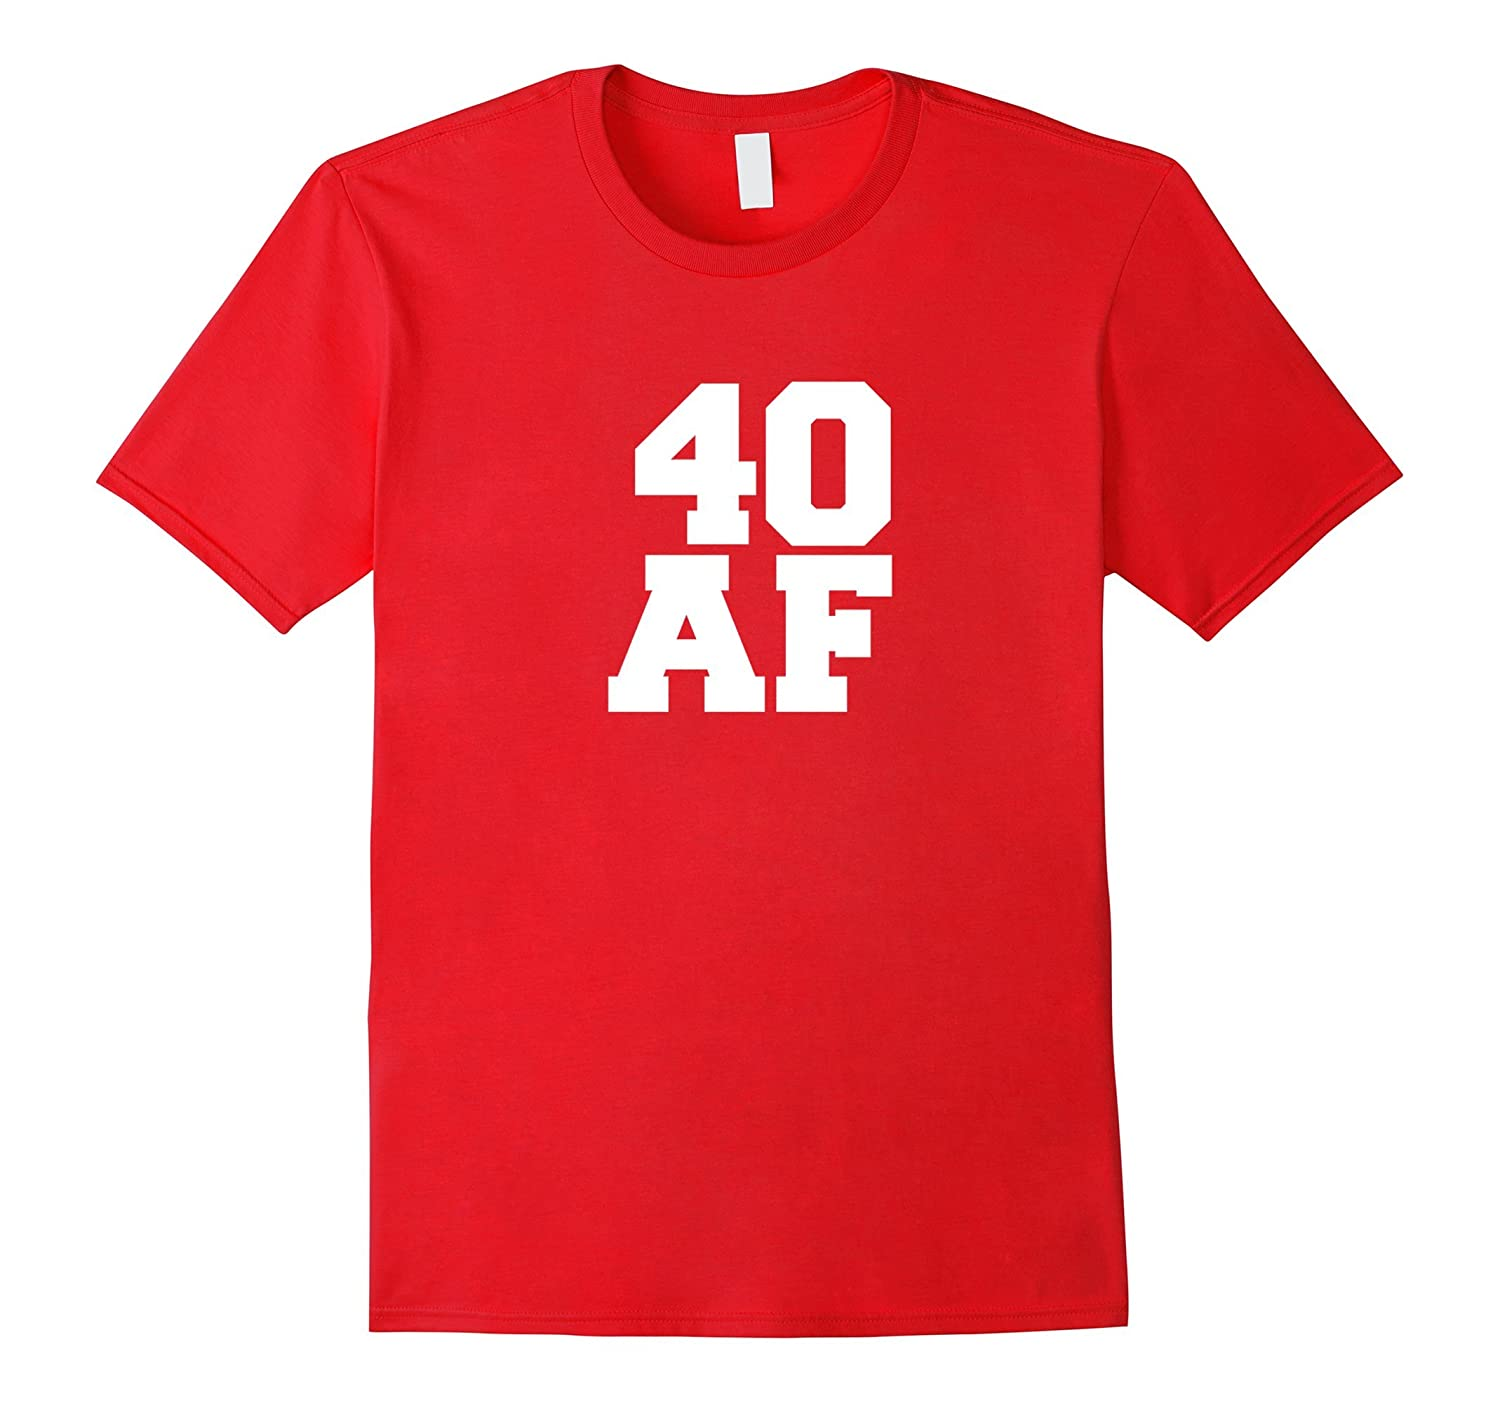 40 AF Funny T Shirt Years Old 40th Birthday Party Gift PL Polozatee